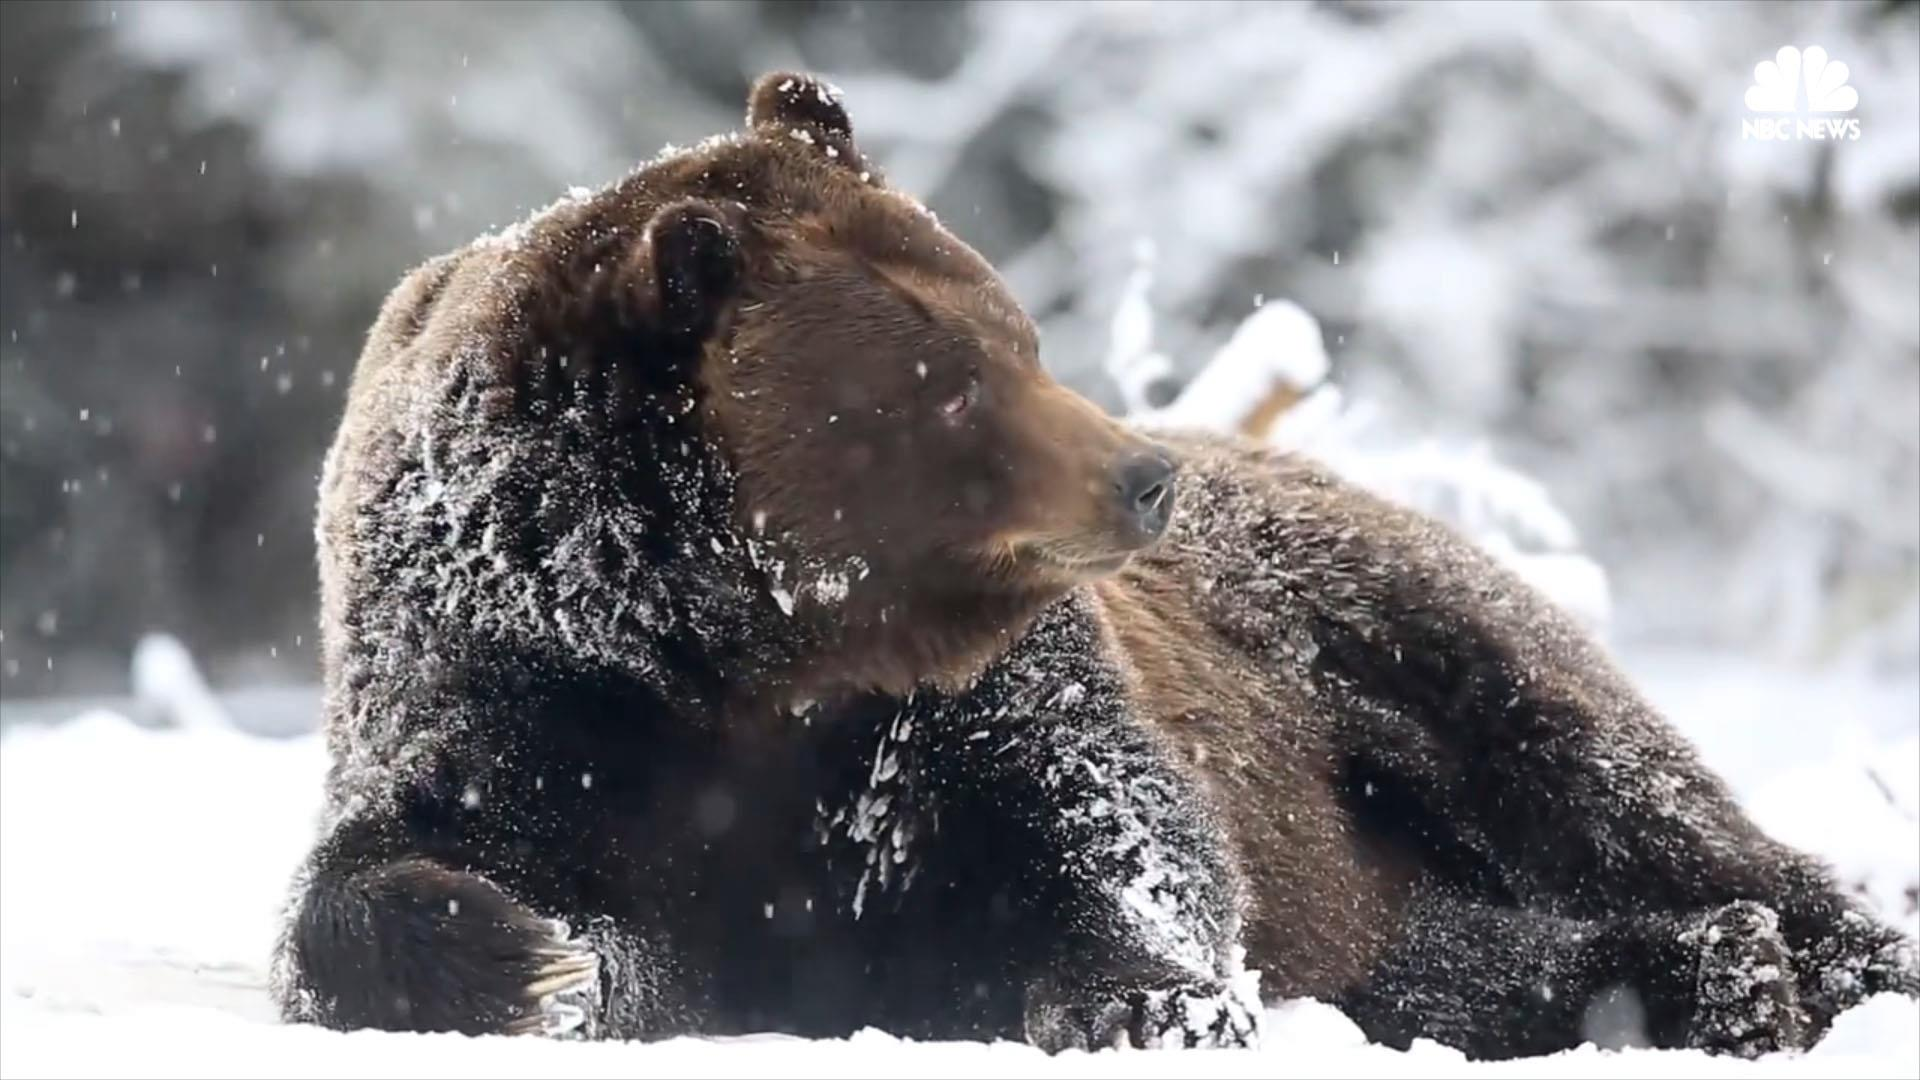 Watch Grizzly Bear and Arctic Fox Enjoy Their Snow Day